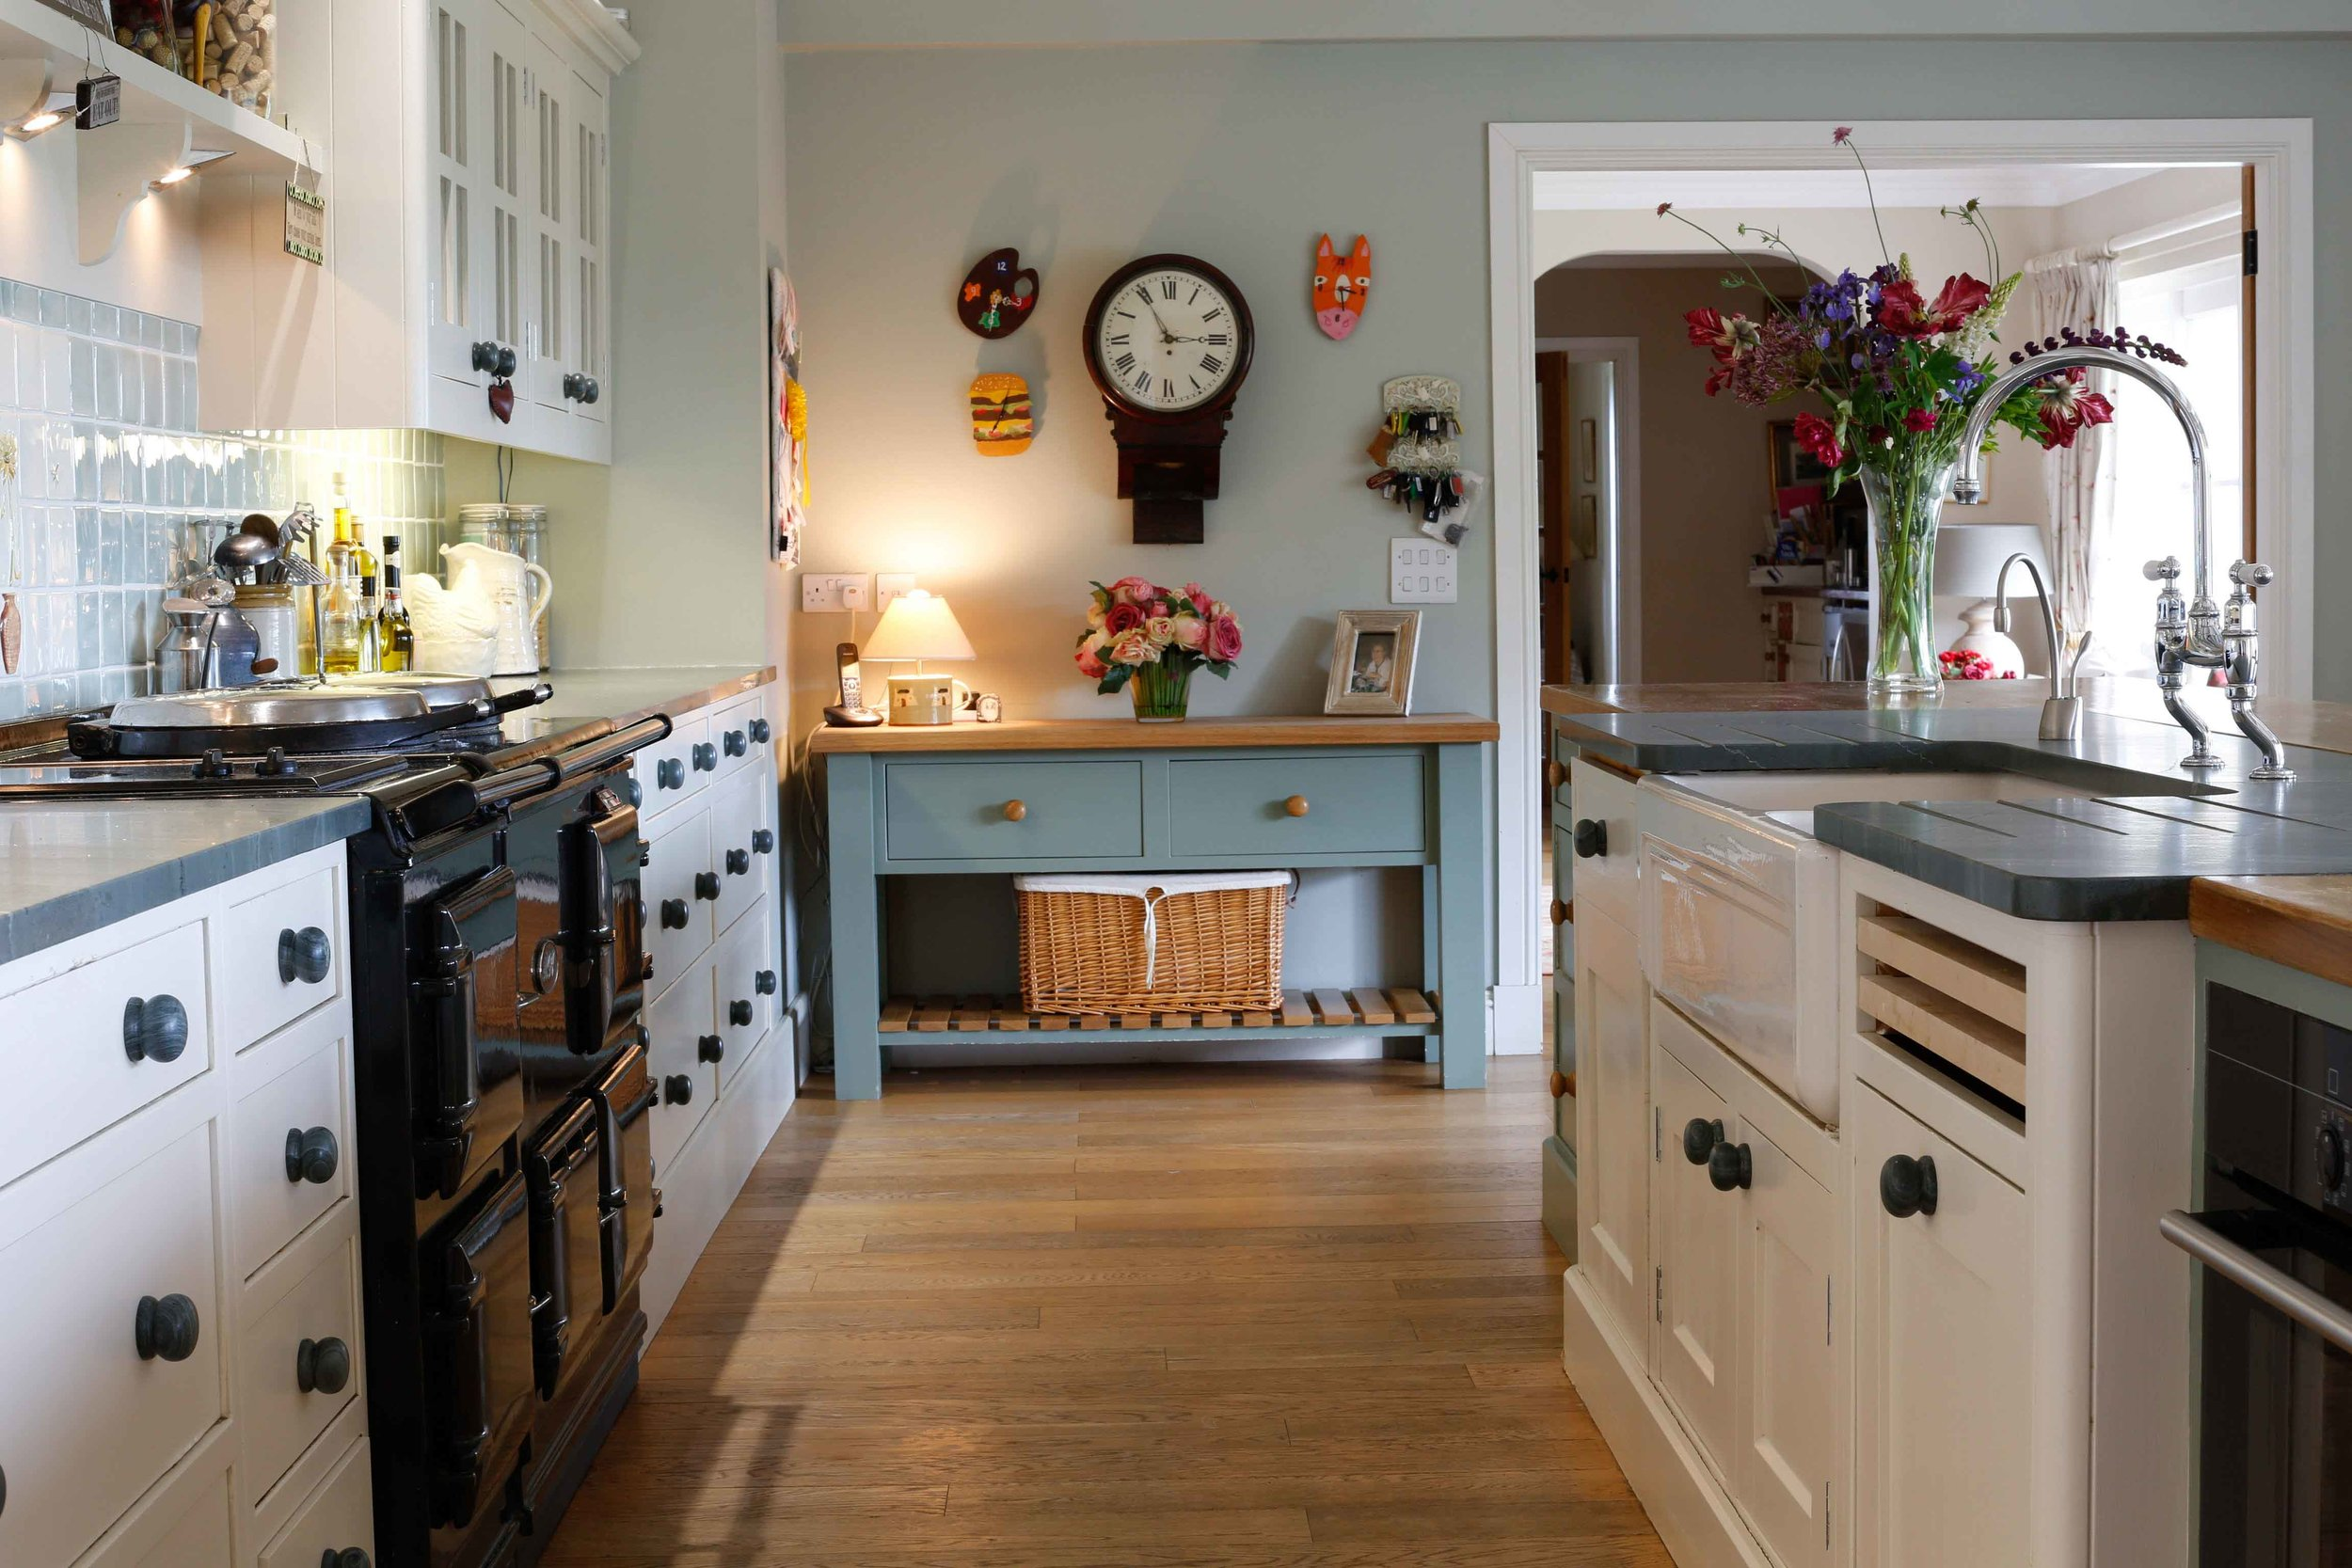 Countryside finished kitchen